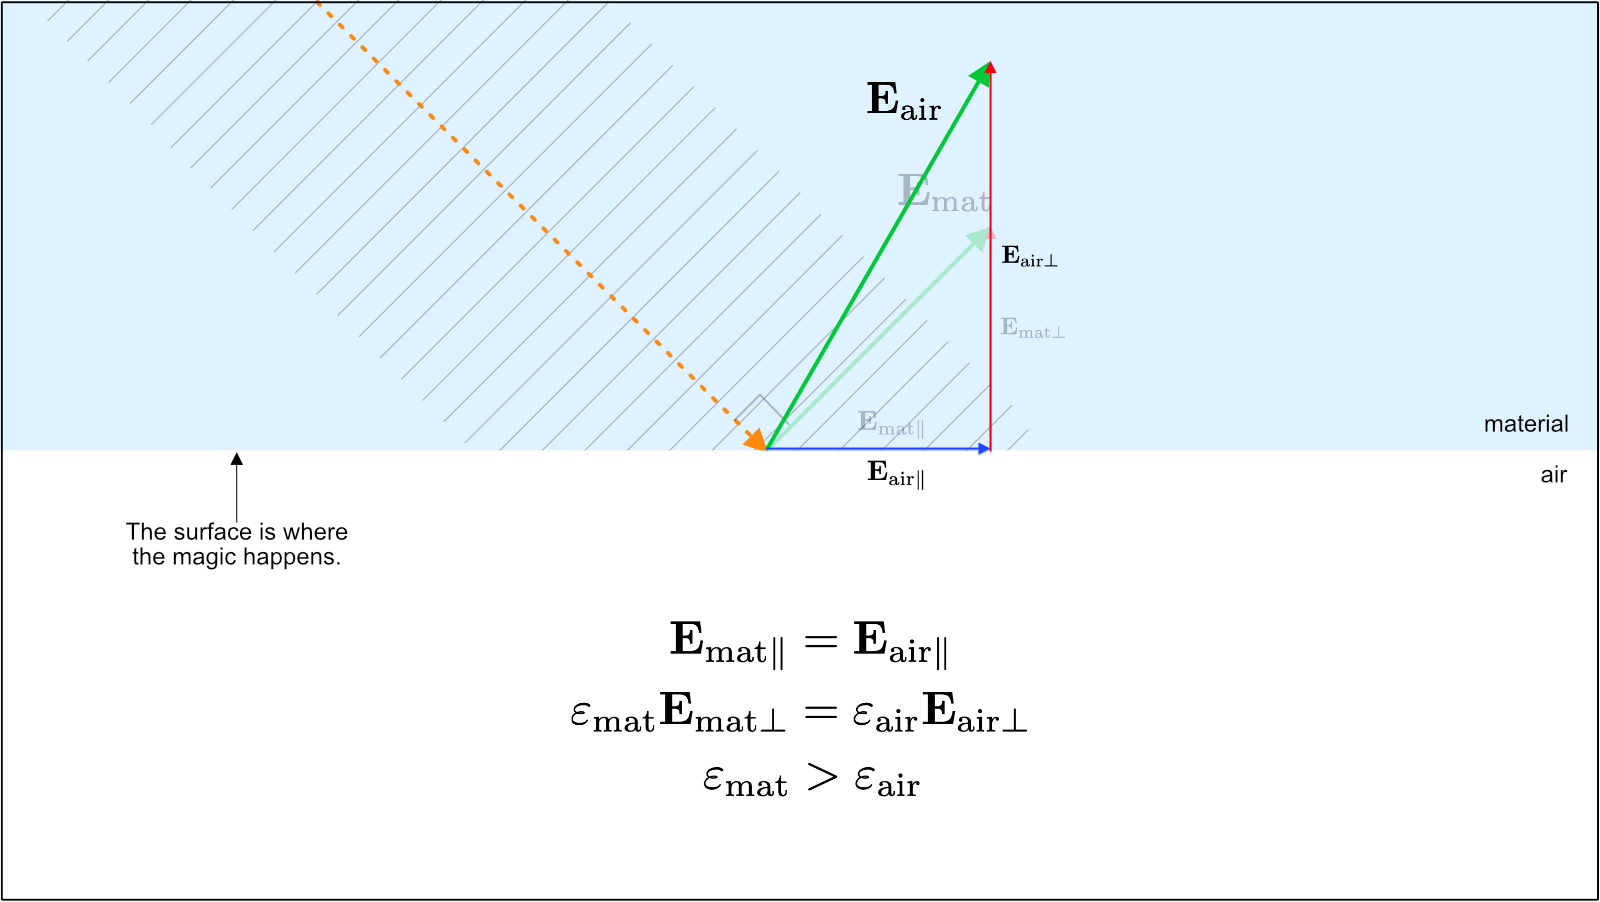 Figure 6. Because the epsilon (electric constant) of the material is larger than that of air, the perpendicular component vector of air has to be larger due to satisfy the equation. Here, a new resultant vector of the electric field in air has been drawn superimposed on the old electric field vector to emphasise the difference.